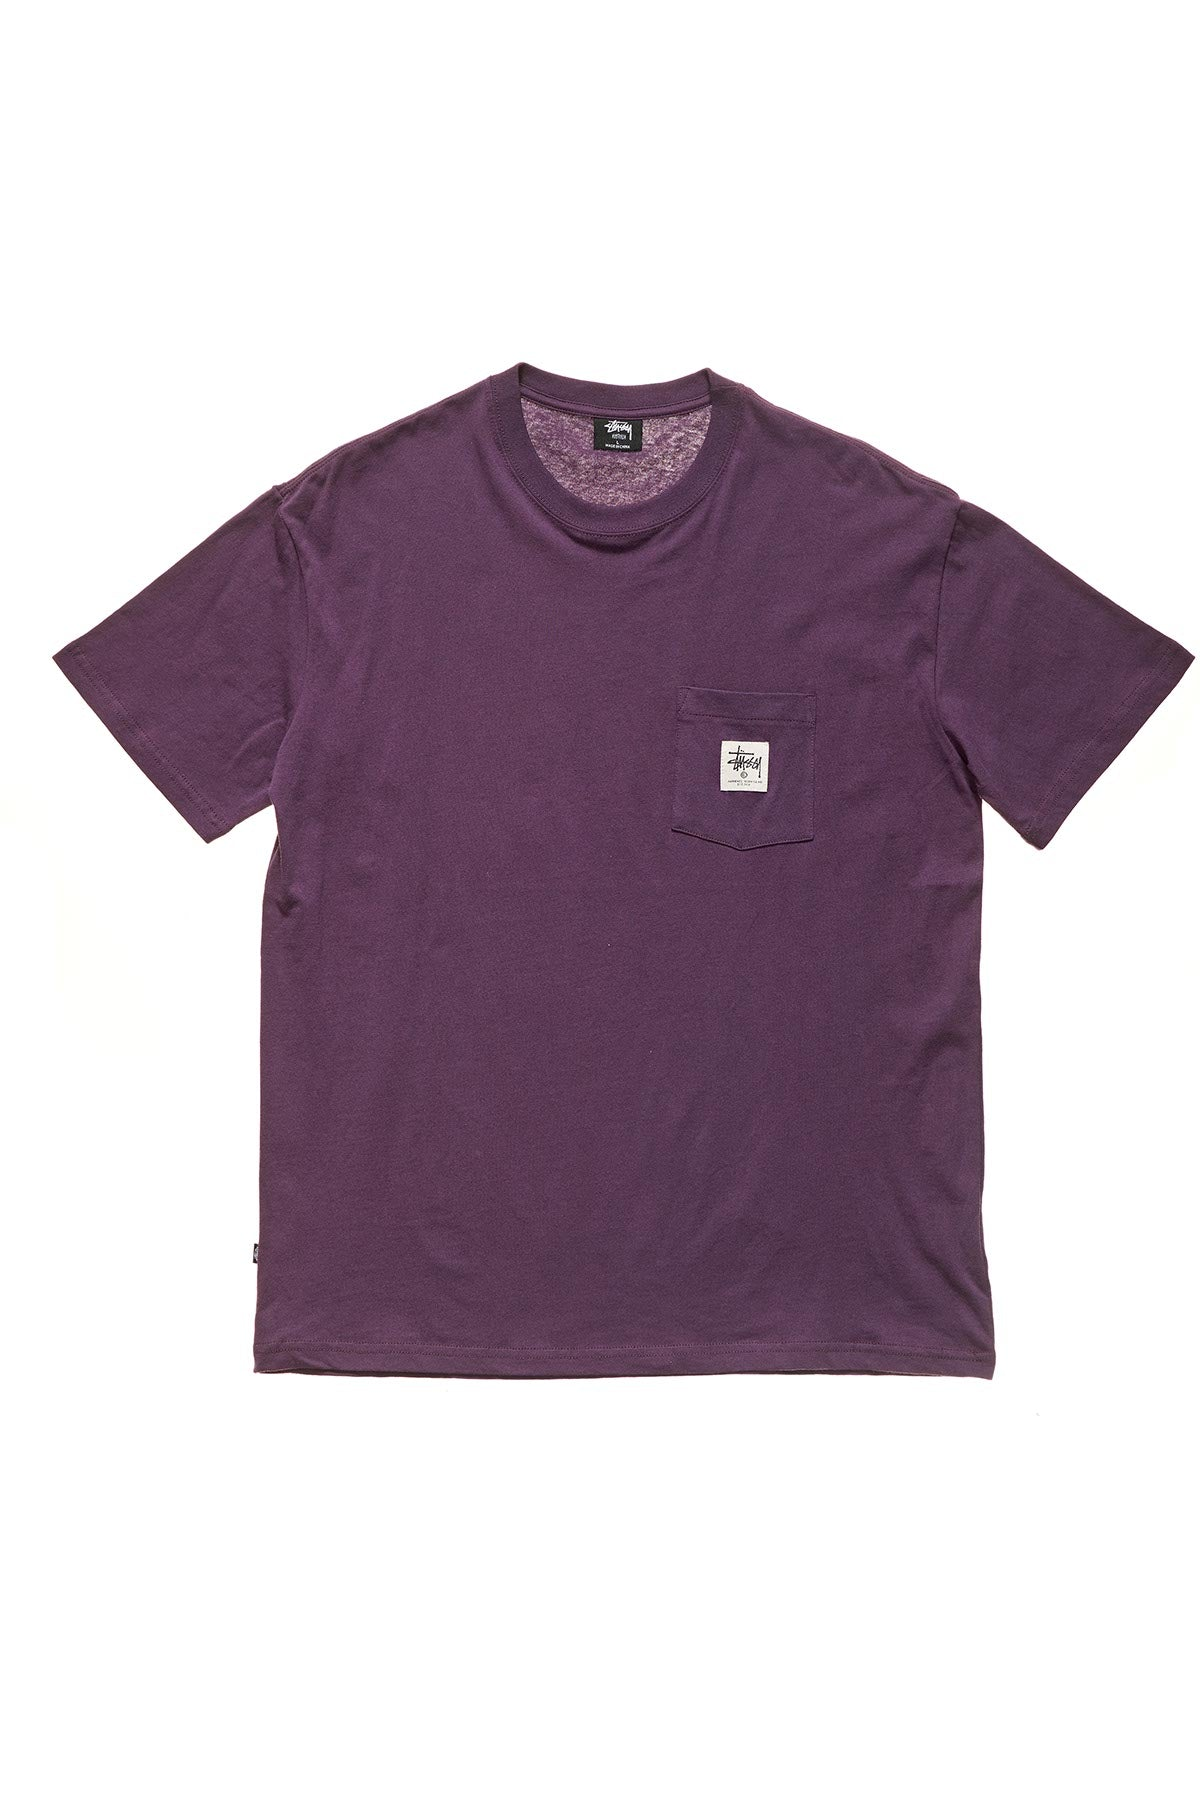 Work Label Pocket Tee - Stüssy Australia